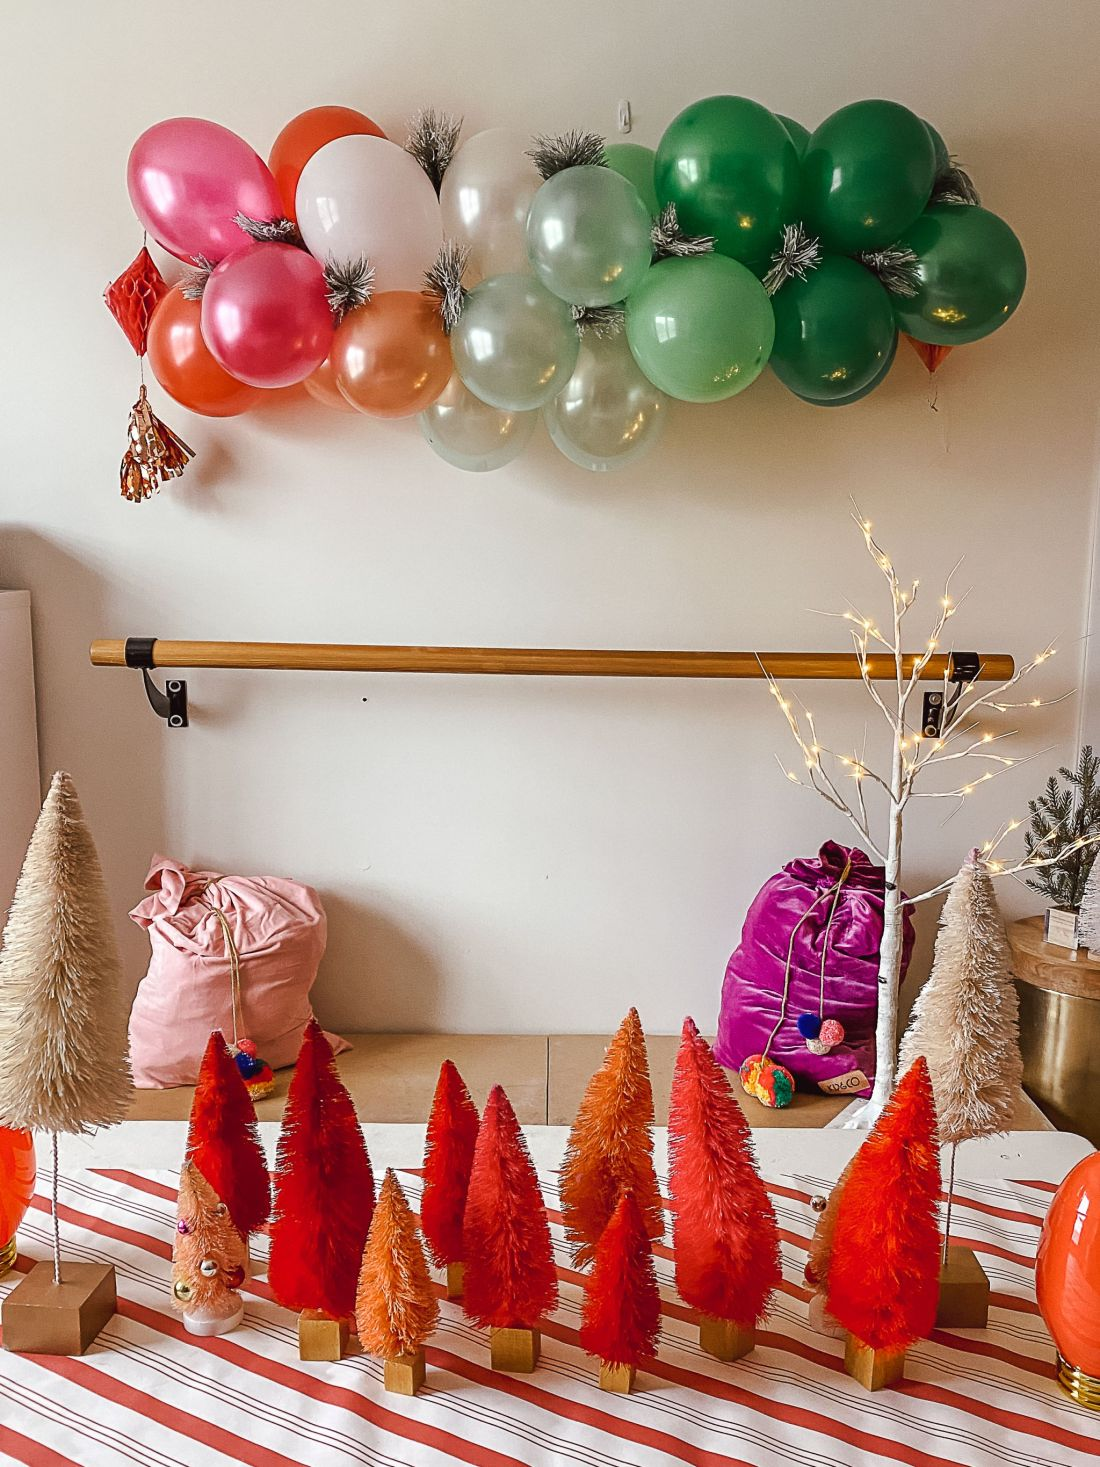 DIY Balloon Garland by popular Nashville lifestyle blog, Modern Day Moguls: image of a balloon garland advent calendar hanging on a white wall above two velvet gift sacks and some red, orange and cream colored bottle brush Christmas trees.